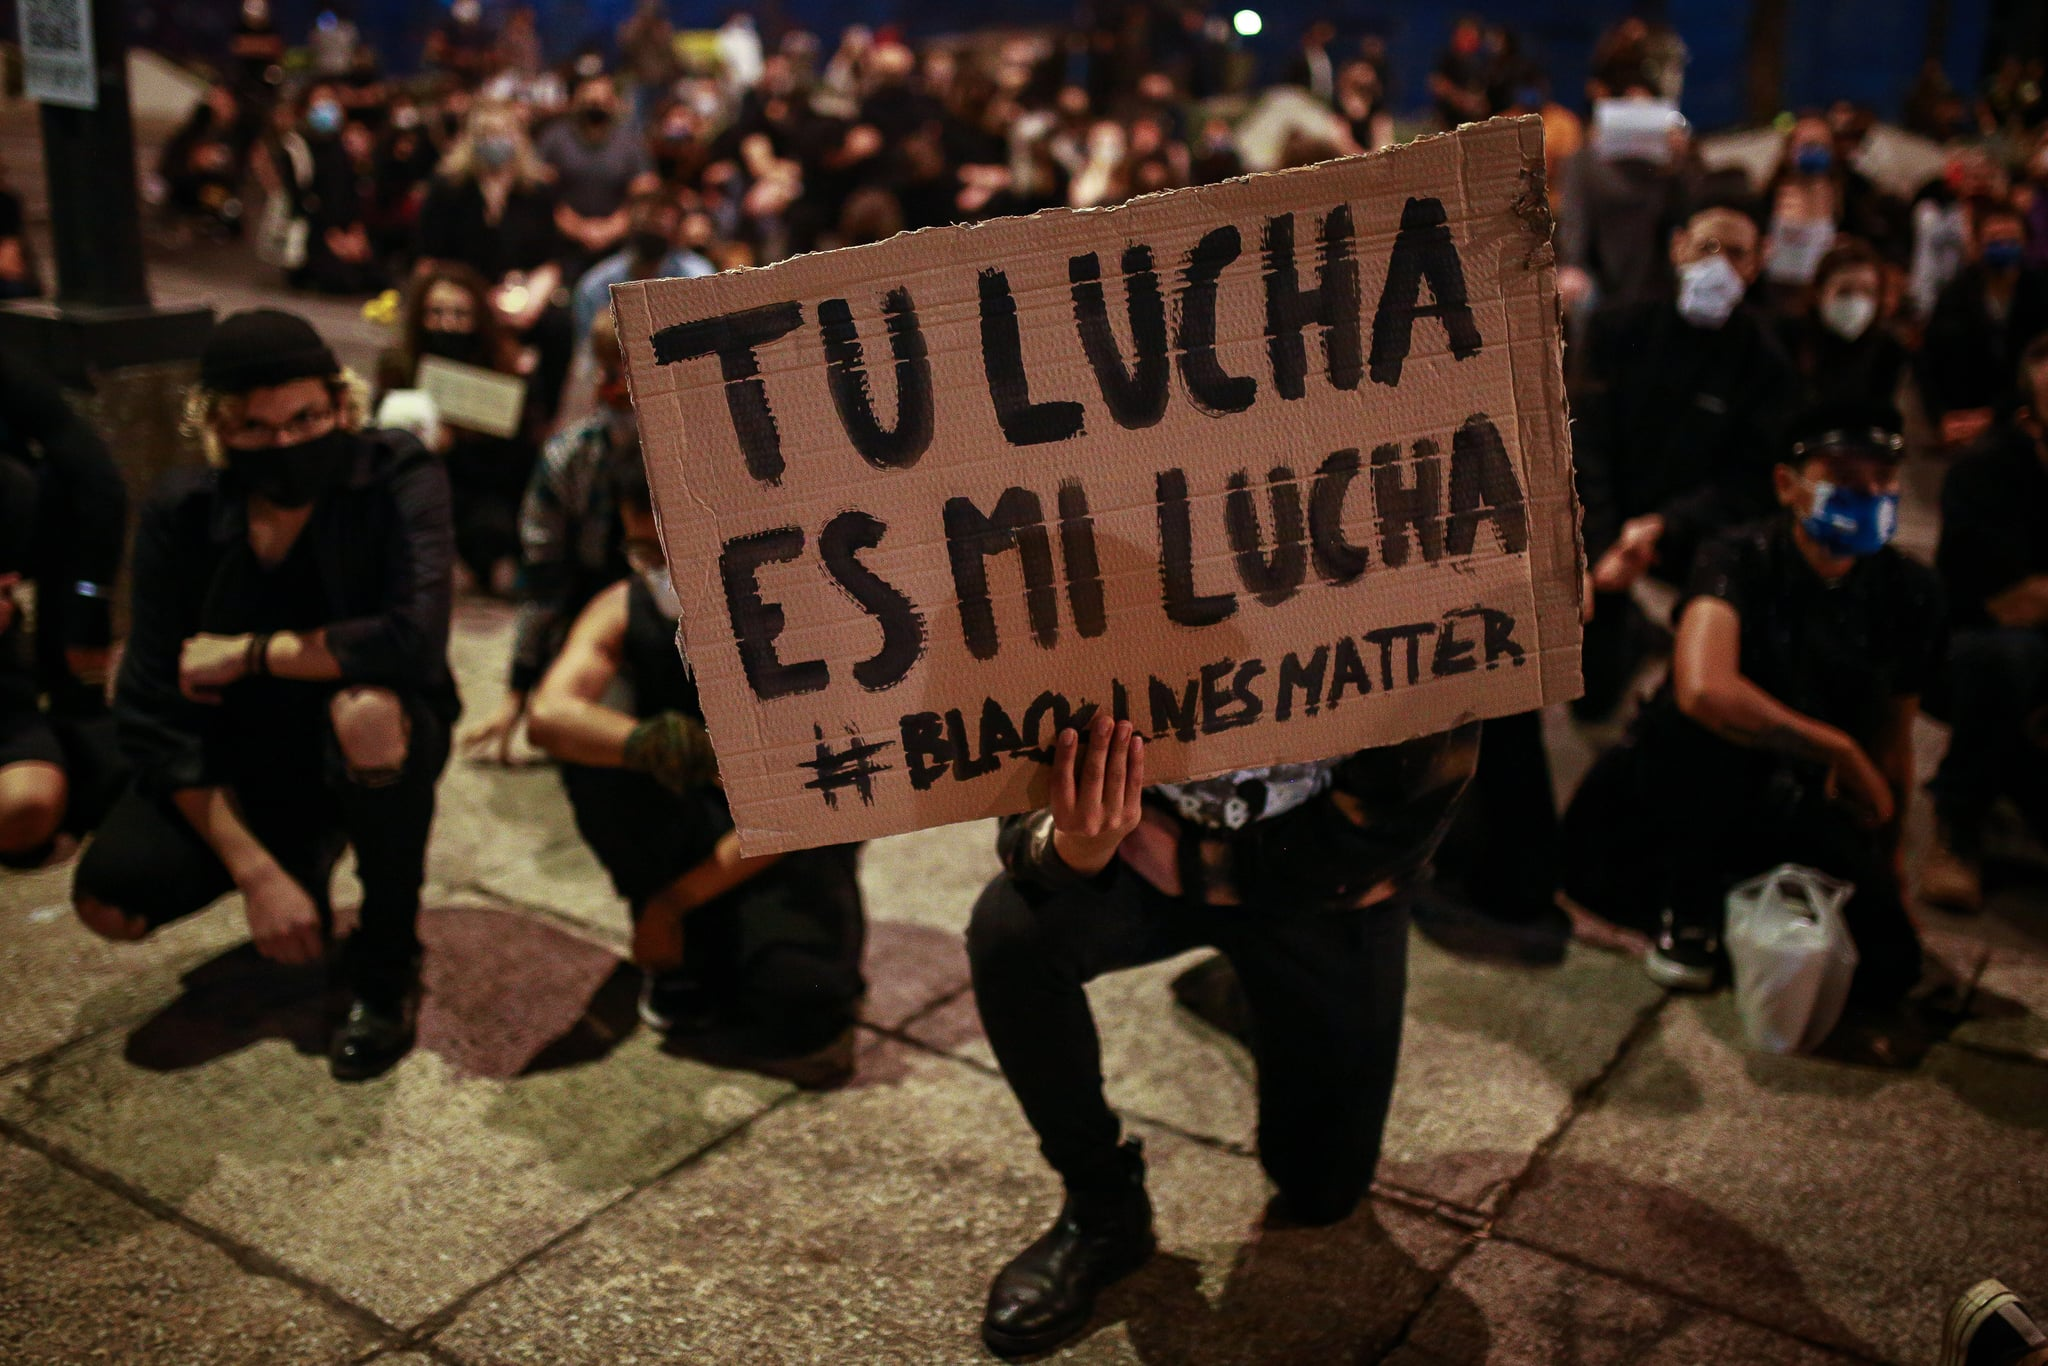 MEXICO CITY, MEXICO - JUNE 04: A banner that reads